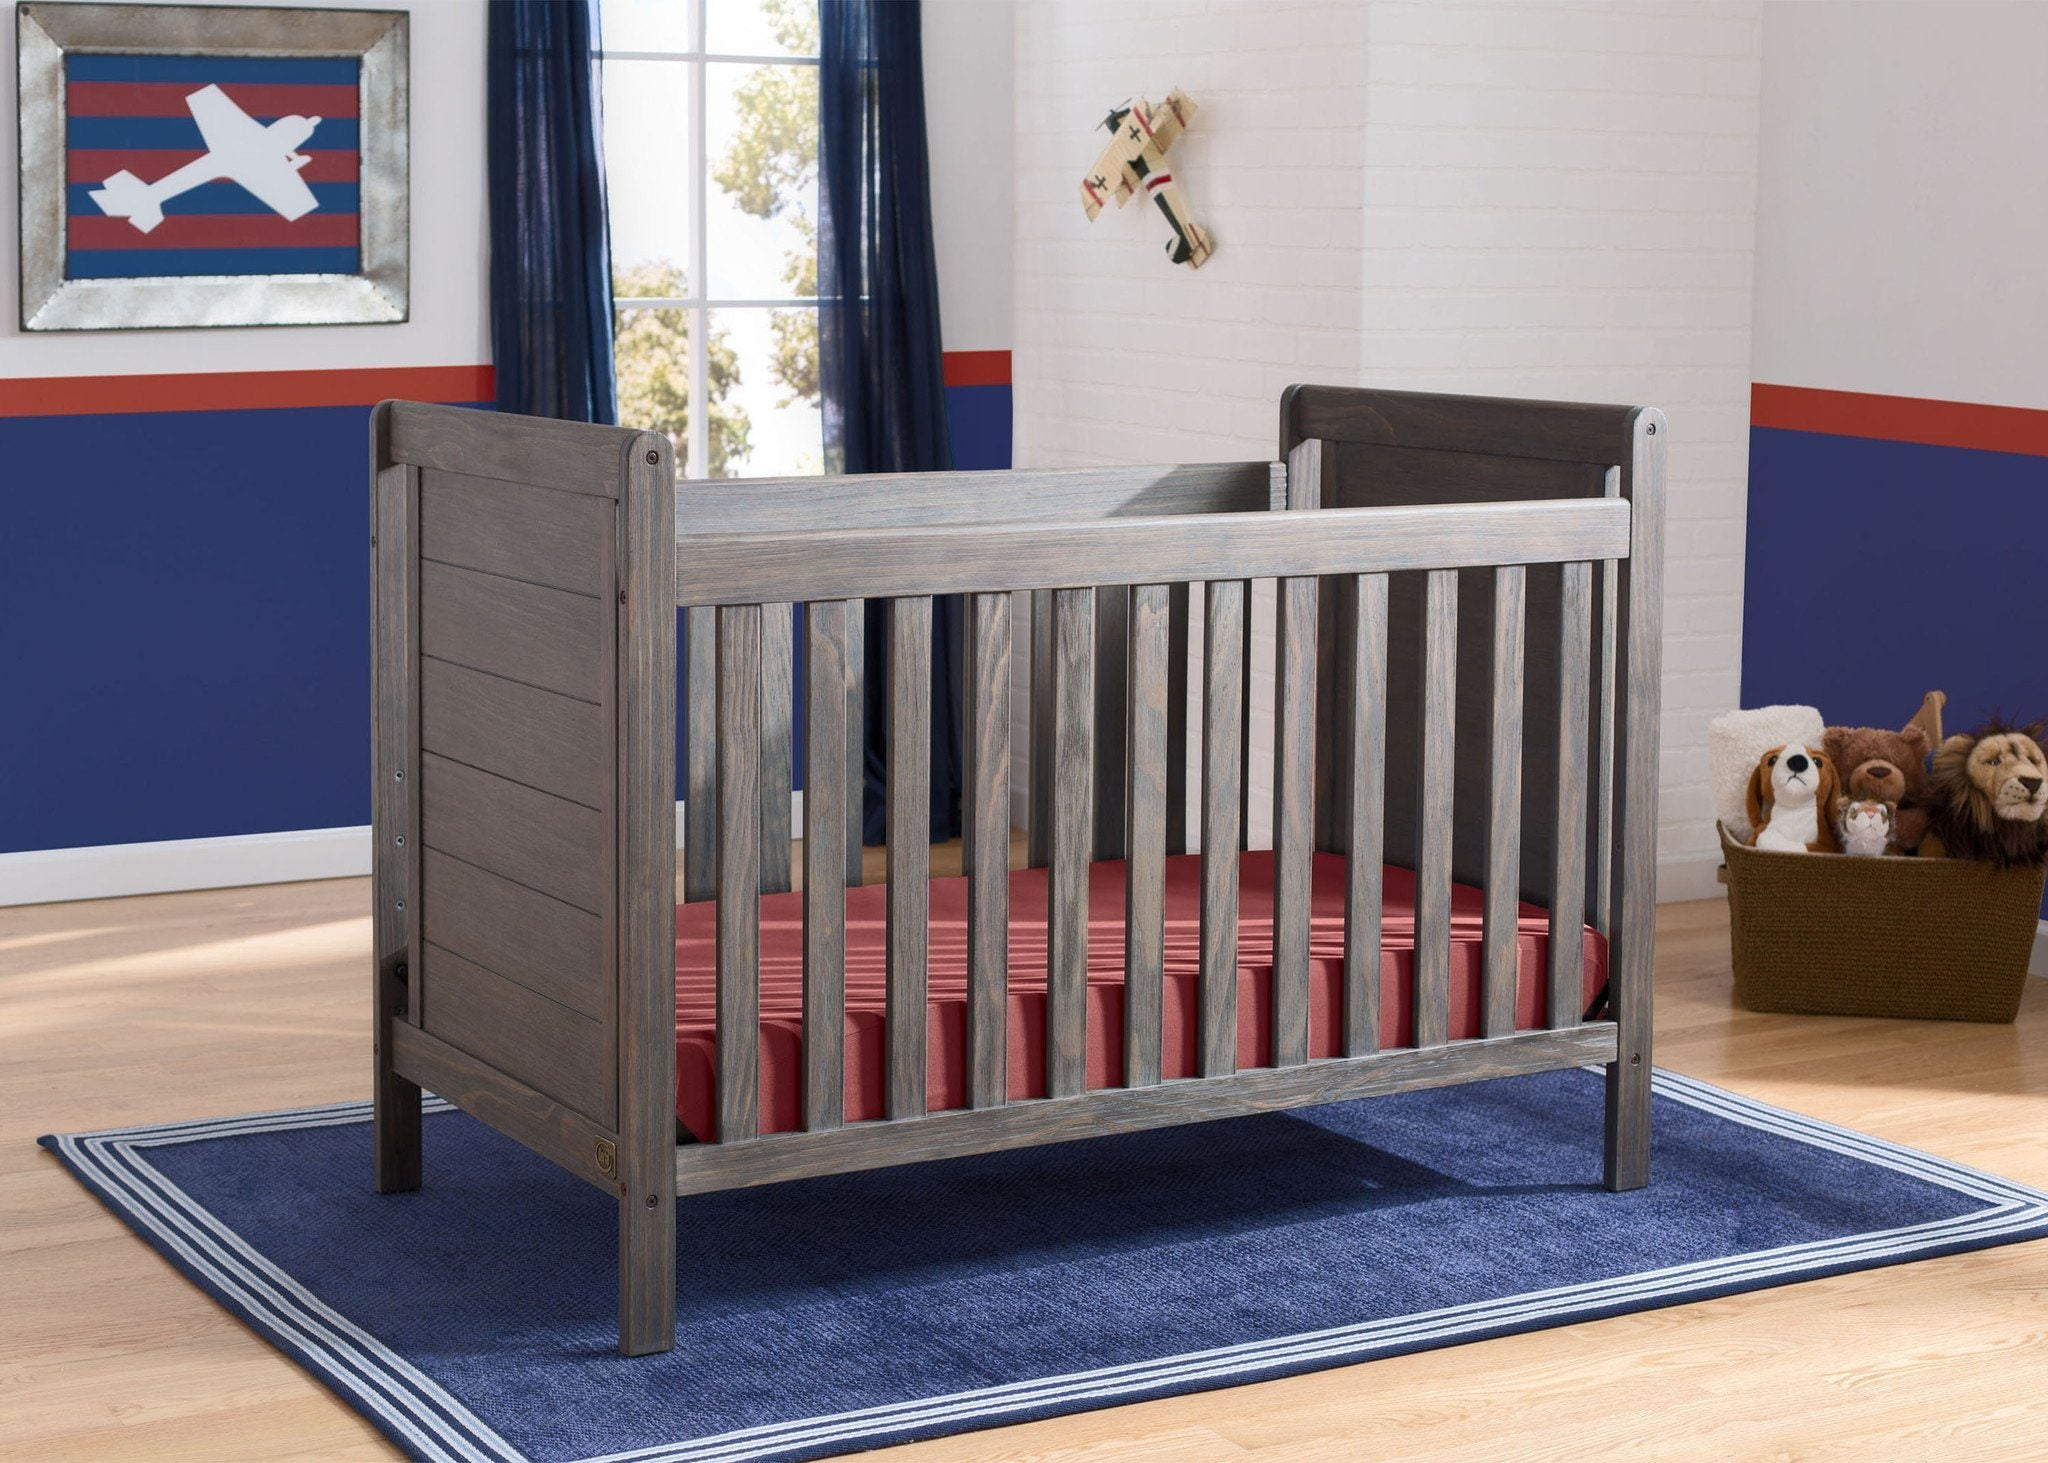 rustic crib furniture. Delta Children Rustic Grey (084) Cali 4-in-1 Crib, Hangtag Crib Furniture